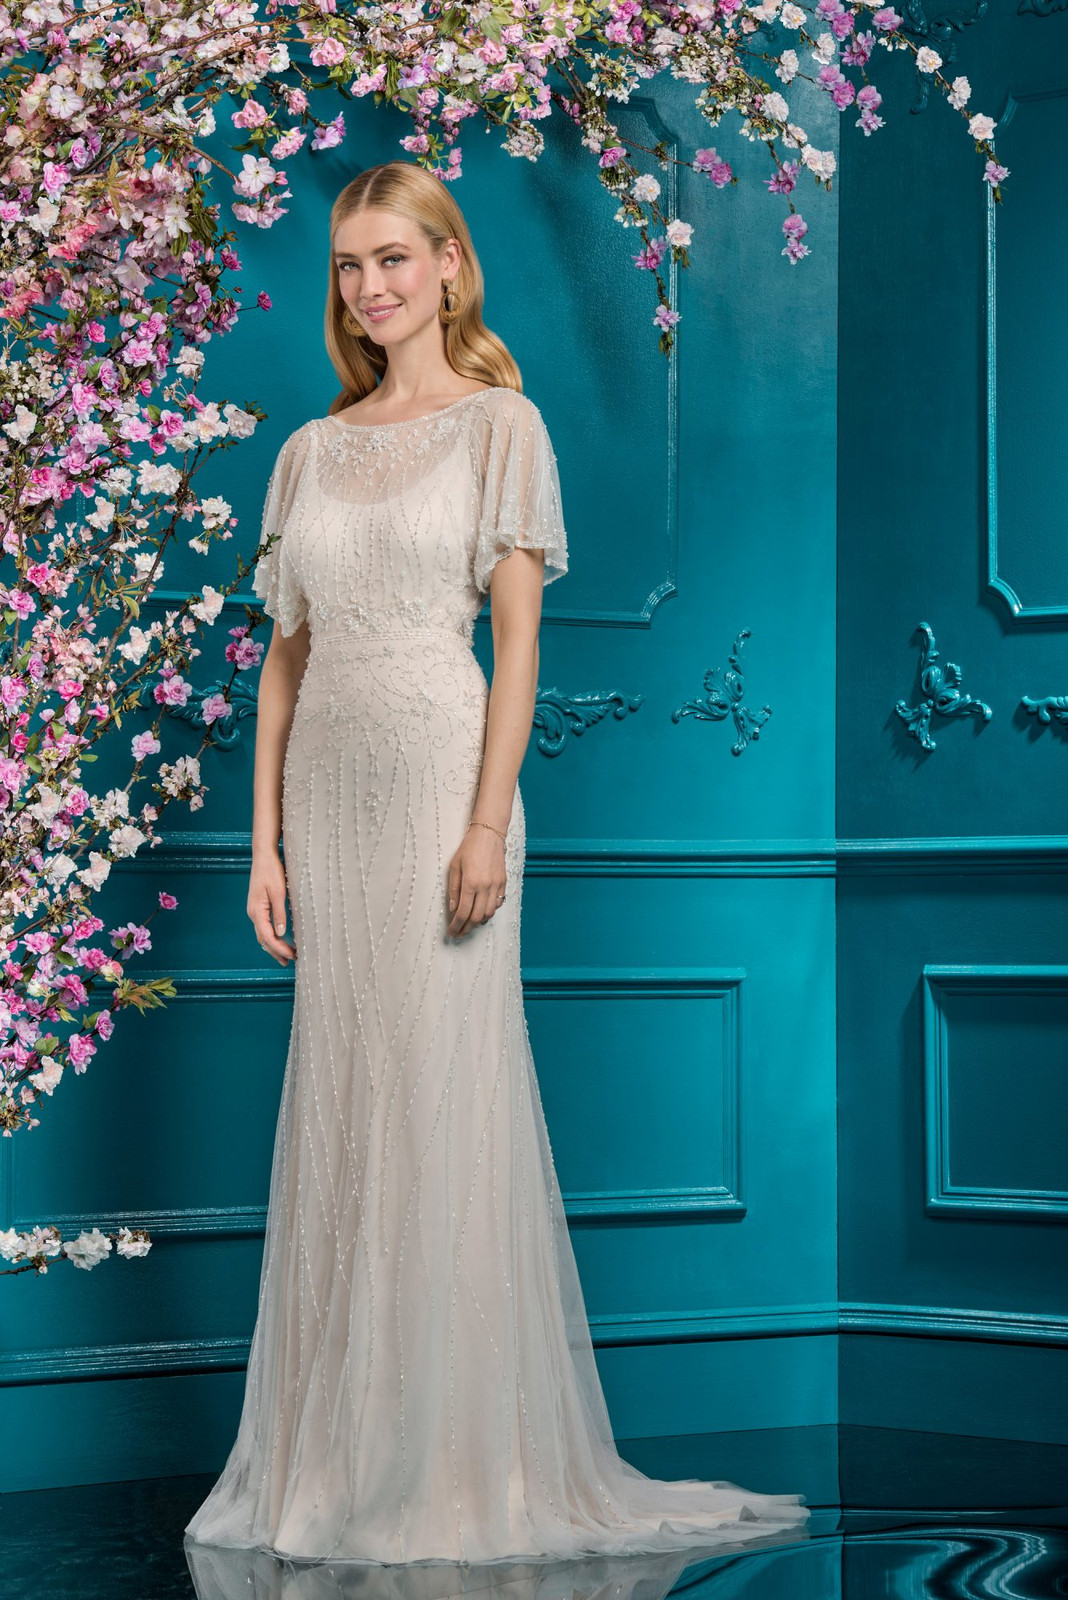 d826fd009 Modern and irrefutably glamorous, a dress this magical deserves to be  loved. With unique angel sleeves and vintage-inspired beaded detailing, ...